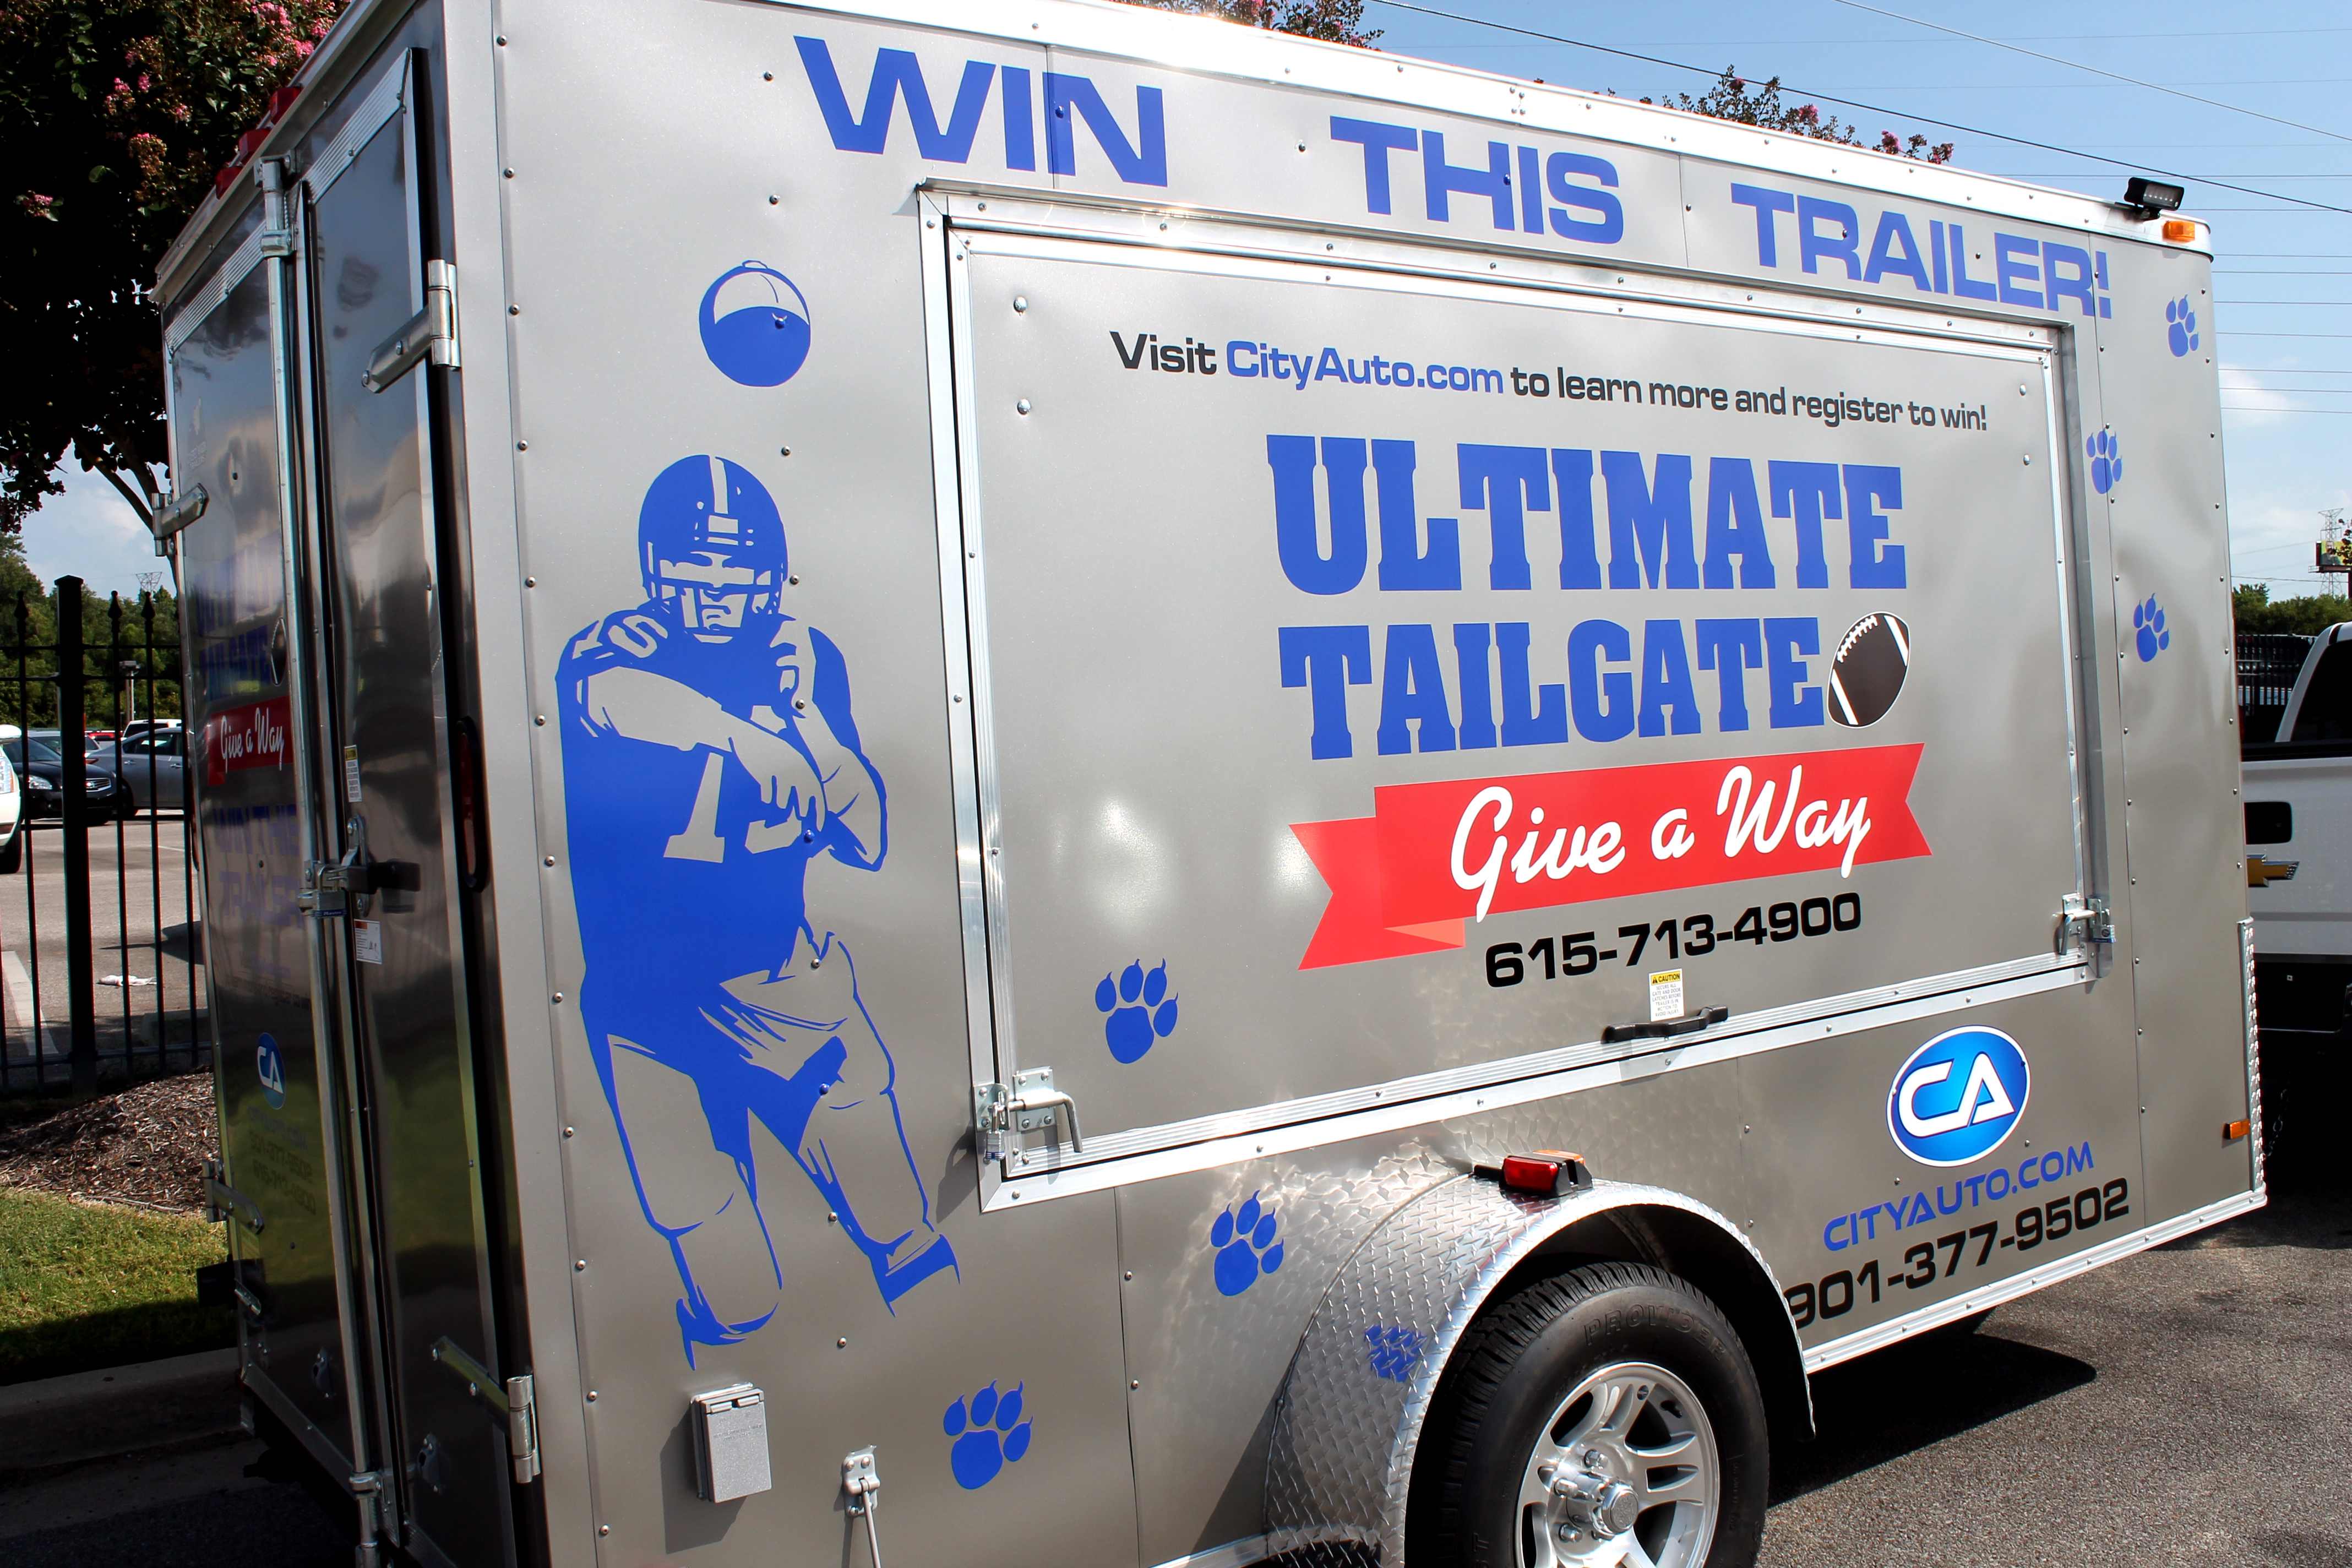 City Auto Tailgate Trailer 102.9 The Buzz